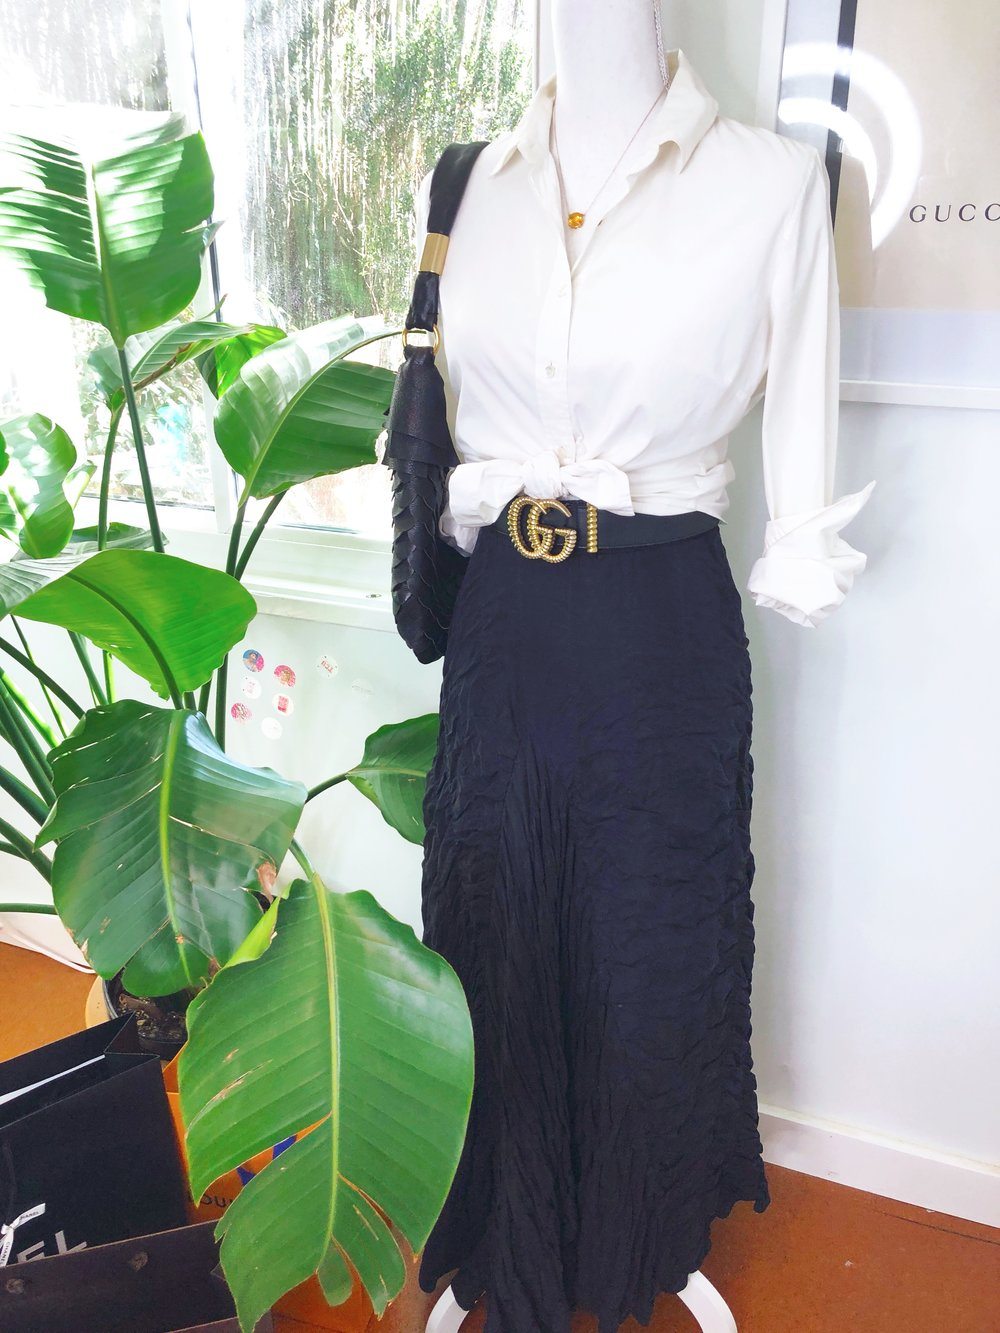 Tiny Closet, Tons of Style | Spring 2019 Trends hiding in my closet: DKNY silk maxi skirt, J.Crew white button down blouse, Gucci belt